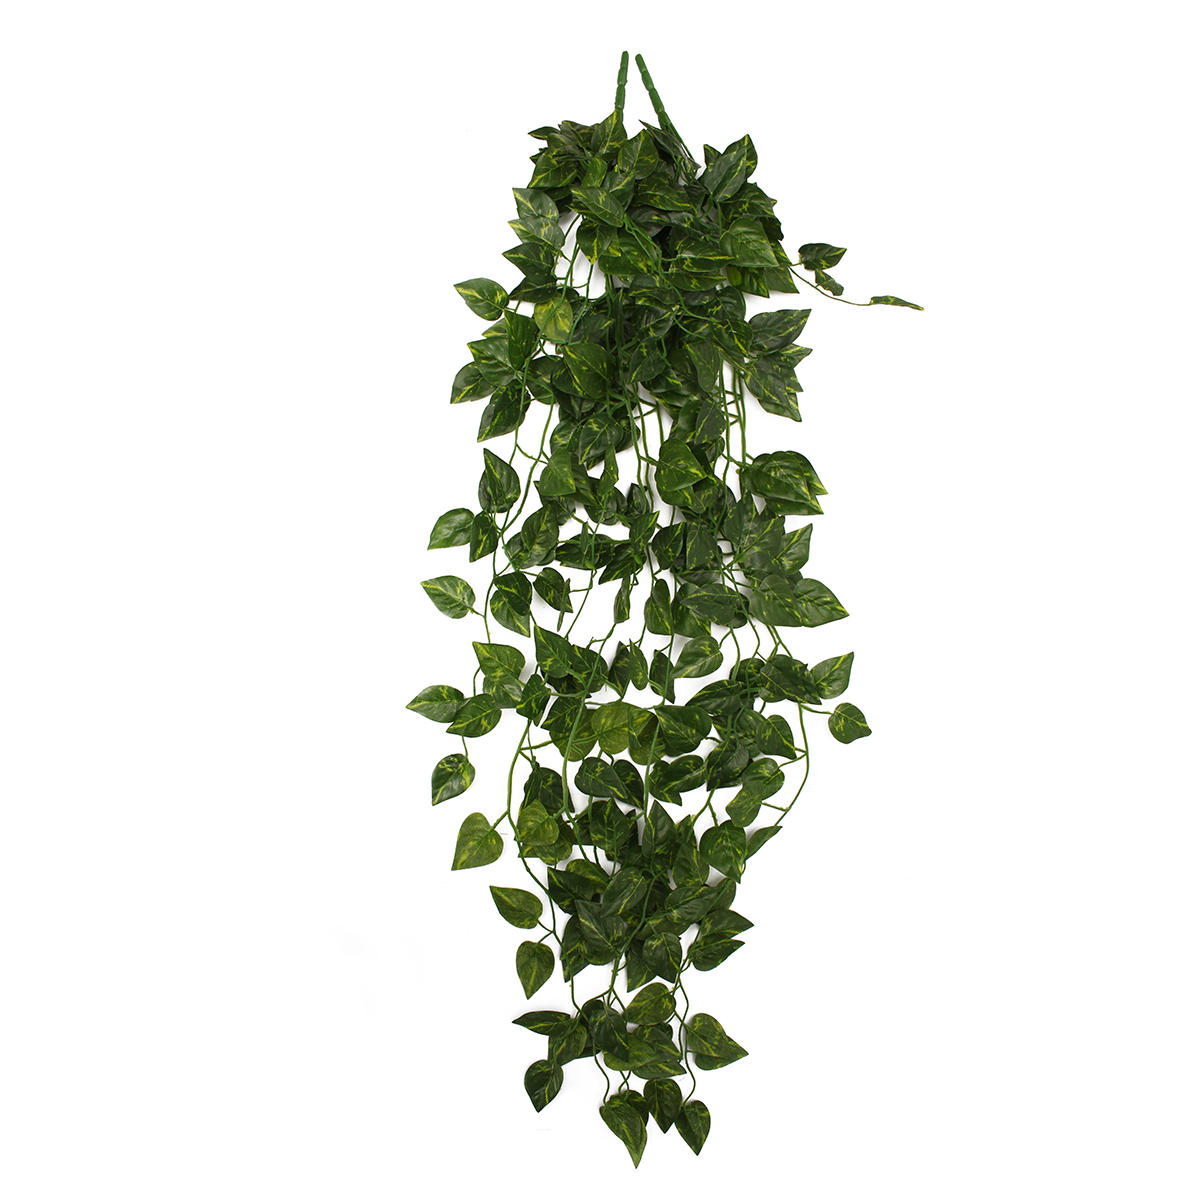 2 Bunch 4ft Artificial Silk Scindapsus Ivy Leaf Garland Plant Vine Foliage Garden Home Decorations COD